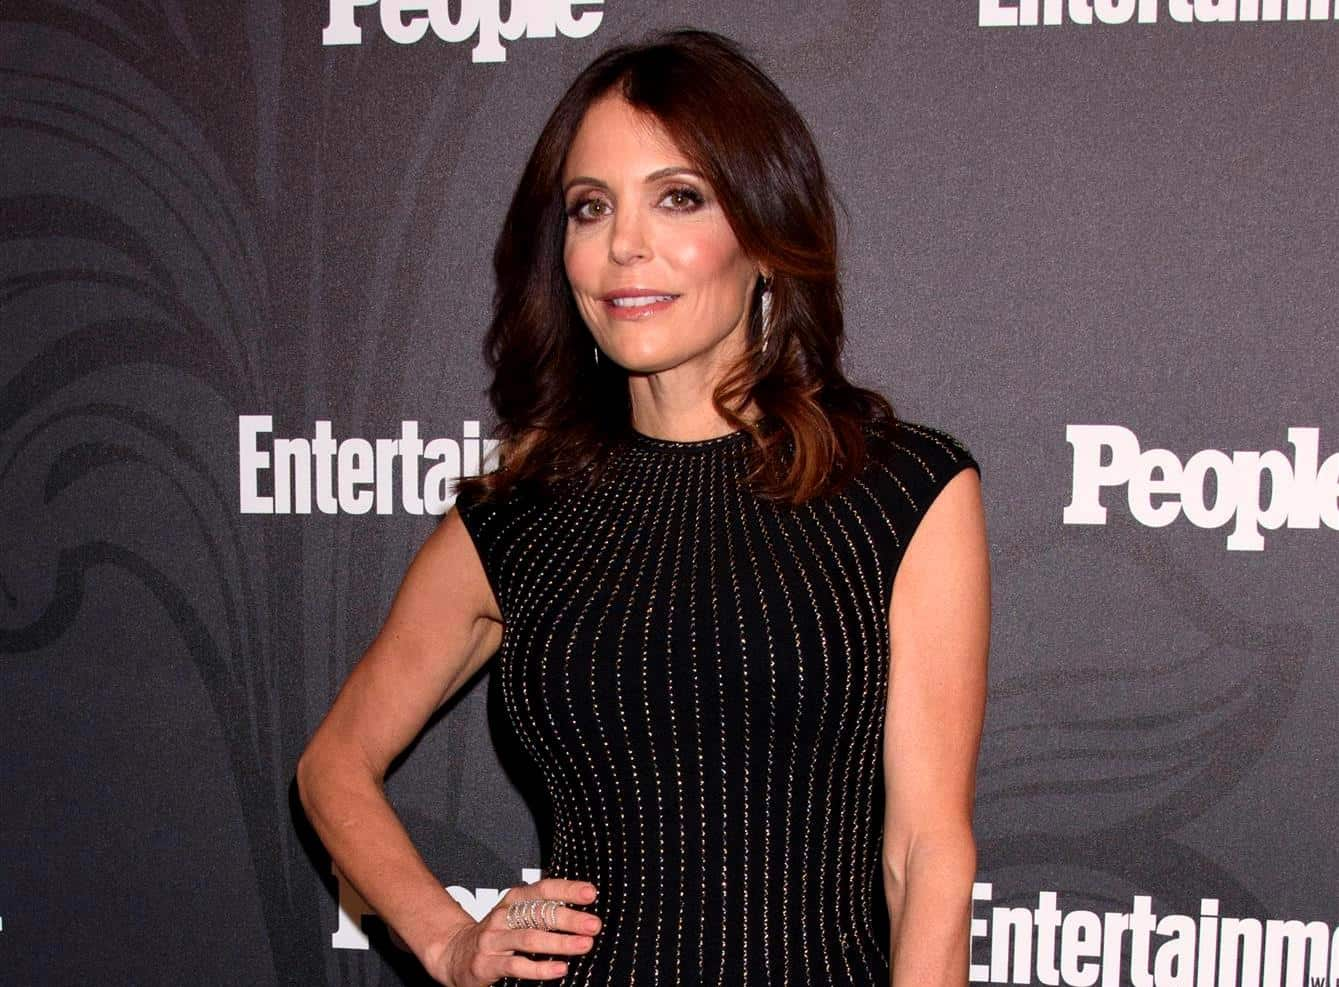 RHONY's Bethenny Frankel Reveals Which Housewives Donated to Charity